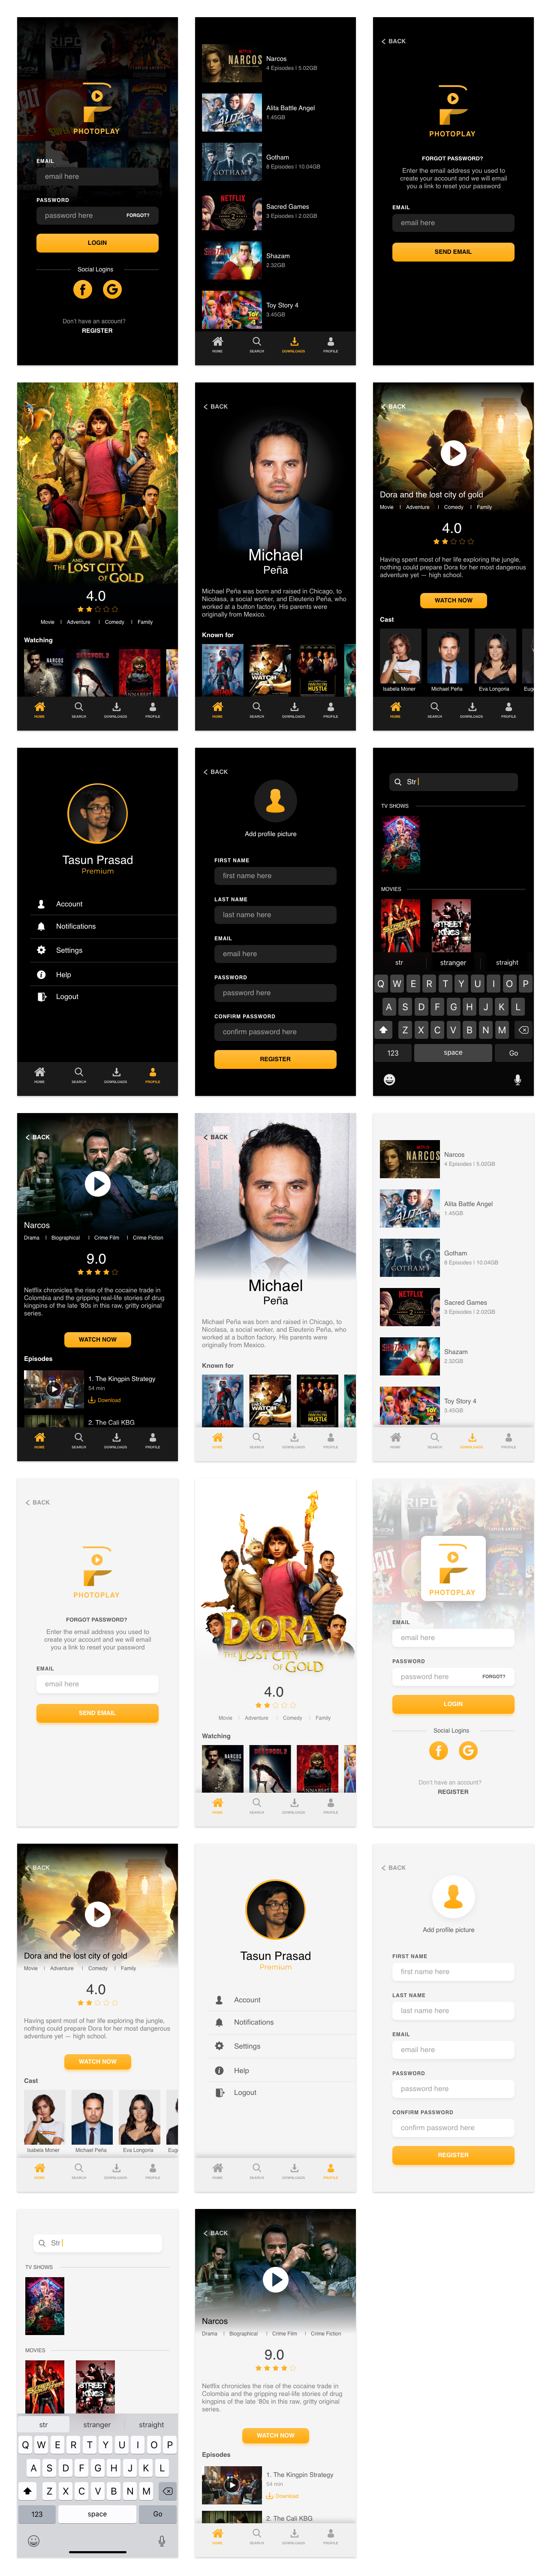 Photoplay Free UI Kit for Adobe XD - A movie and TV Show streaming mobile UI Kit. Minimal and clean app design, 20 screens for you to get started.